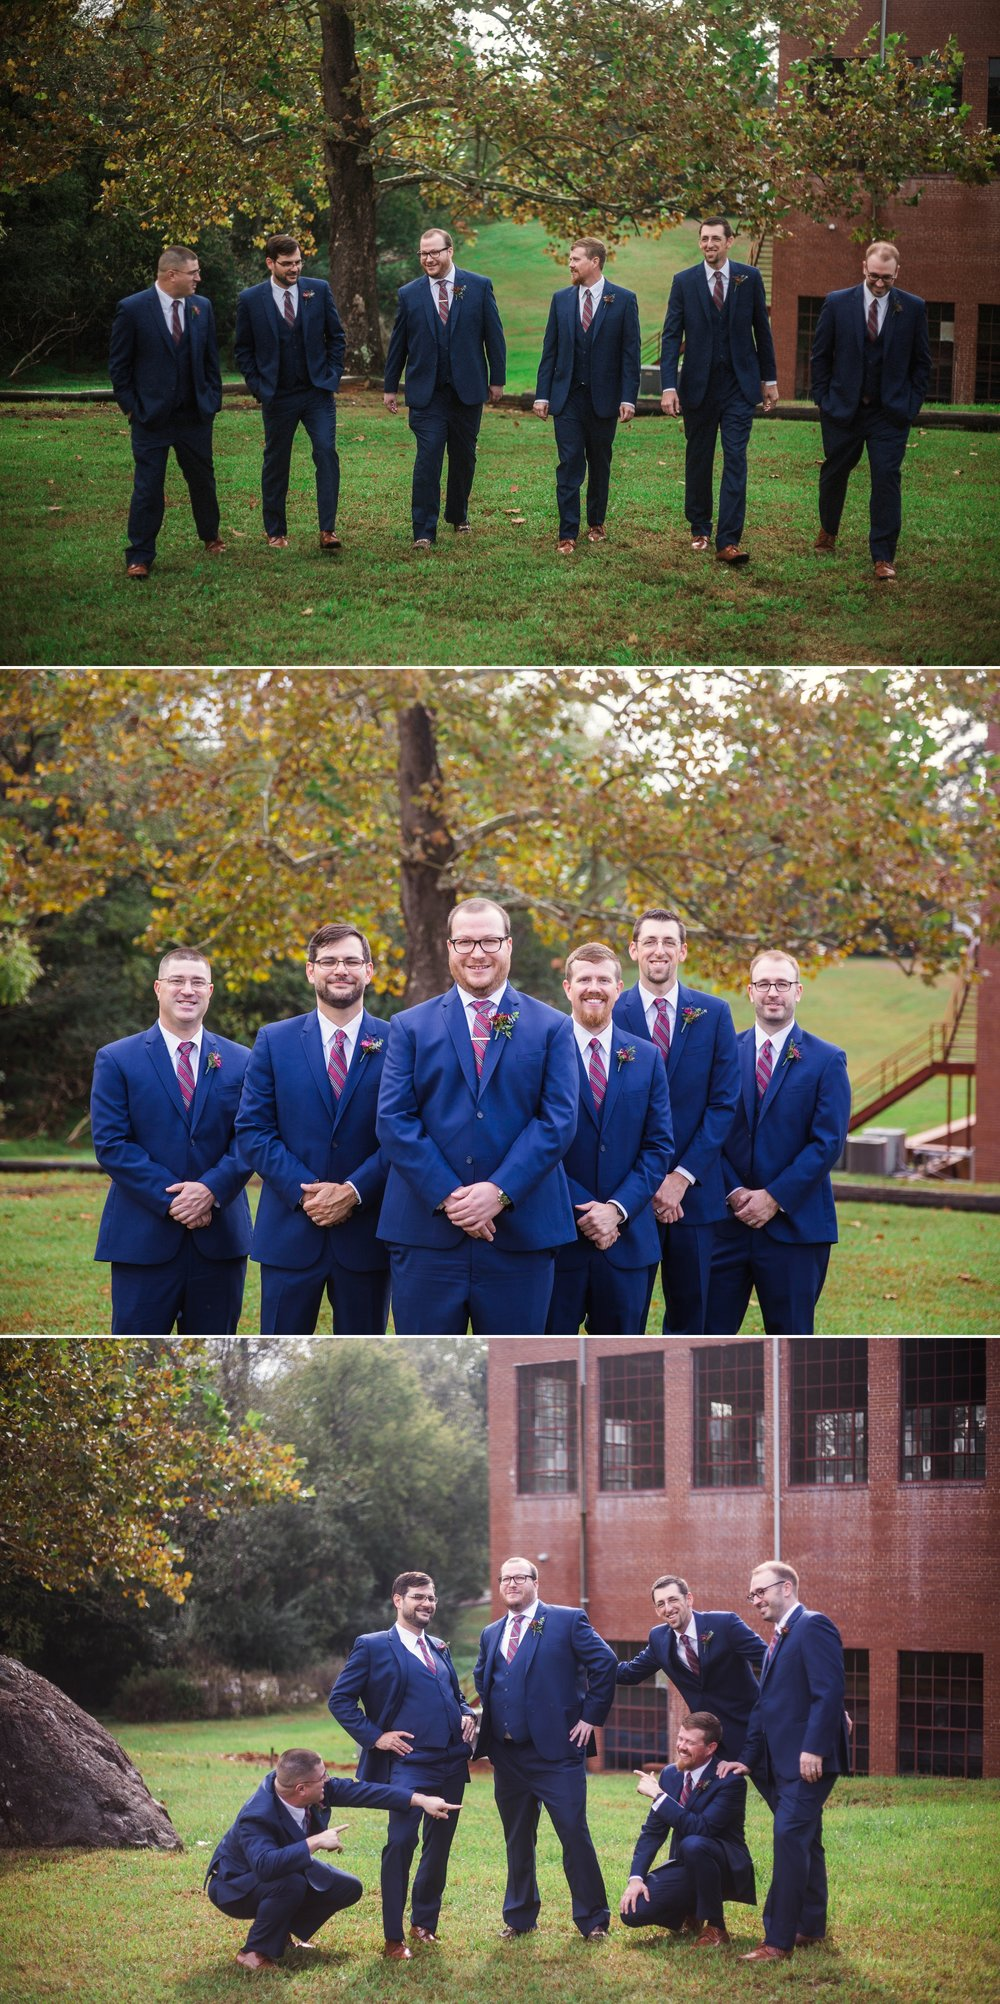 Groomsmen Portraits - Brittany + Douglas - Forest Hall at Chatham Mills in Pittsboro, NC - Raleigh North Carolina Wedding Photographer